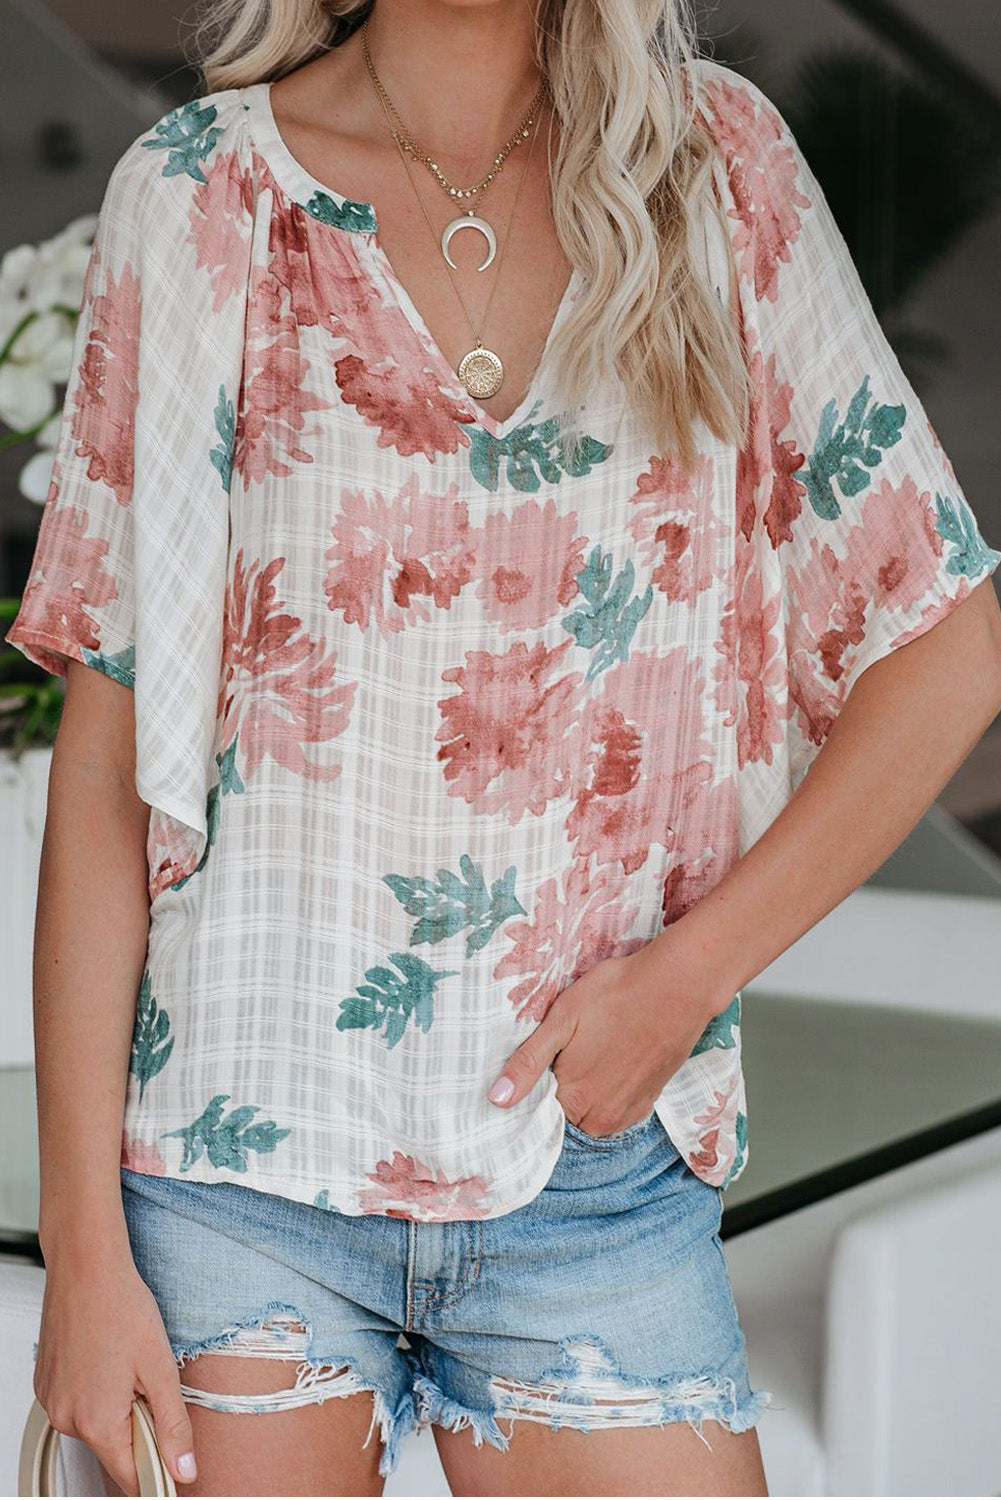 Honeysuckle Sweet Floral Top